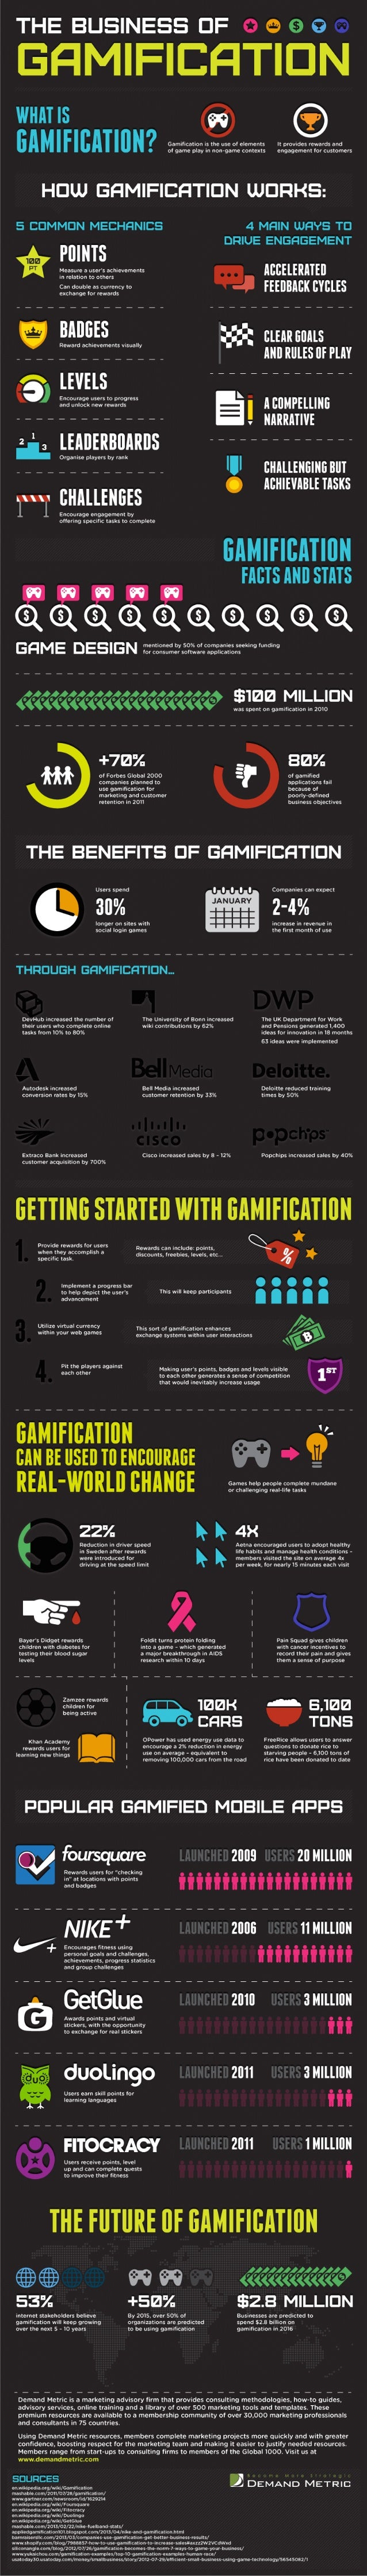 Gamification Infographic from Demand Metric